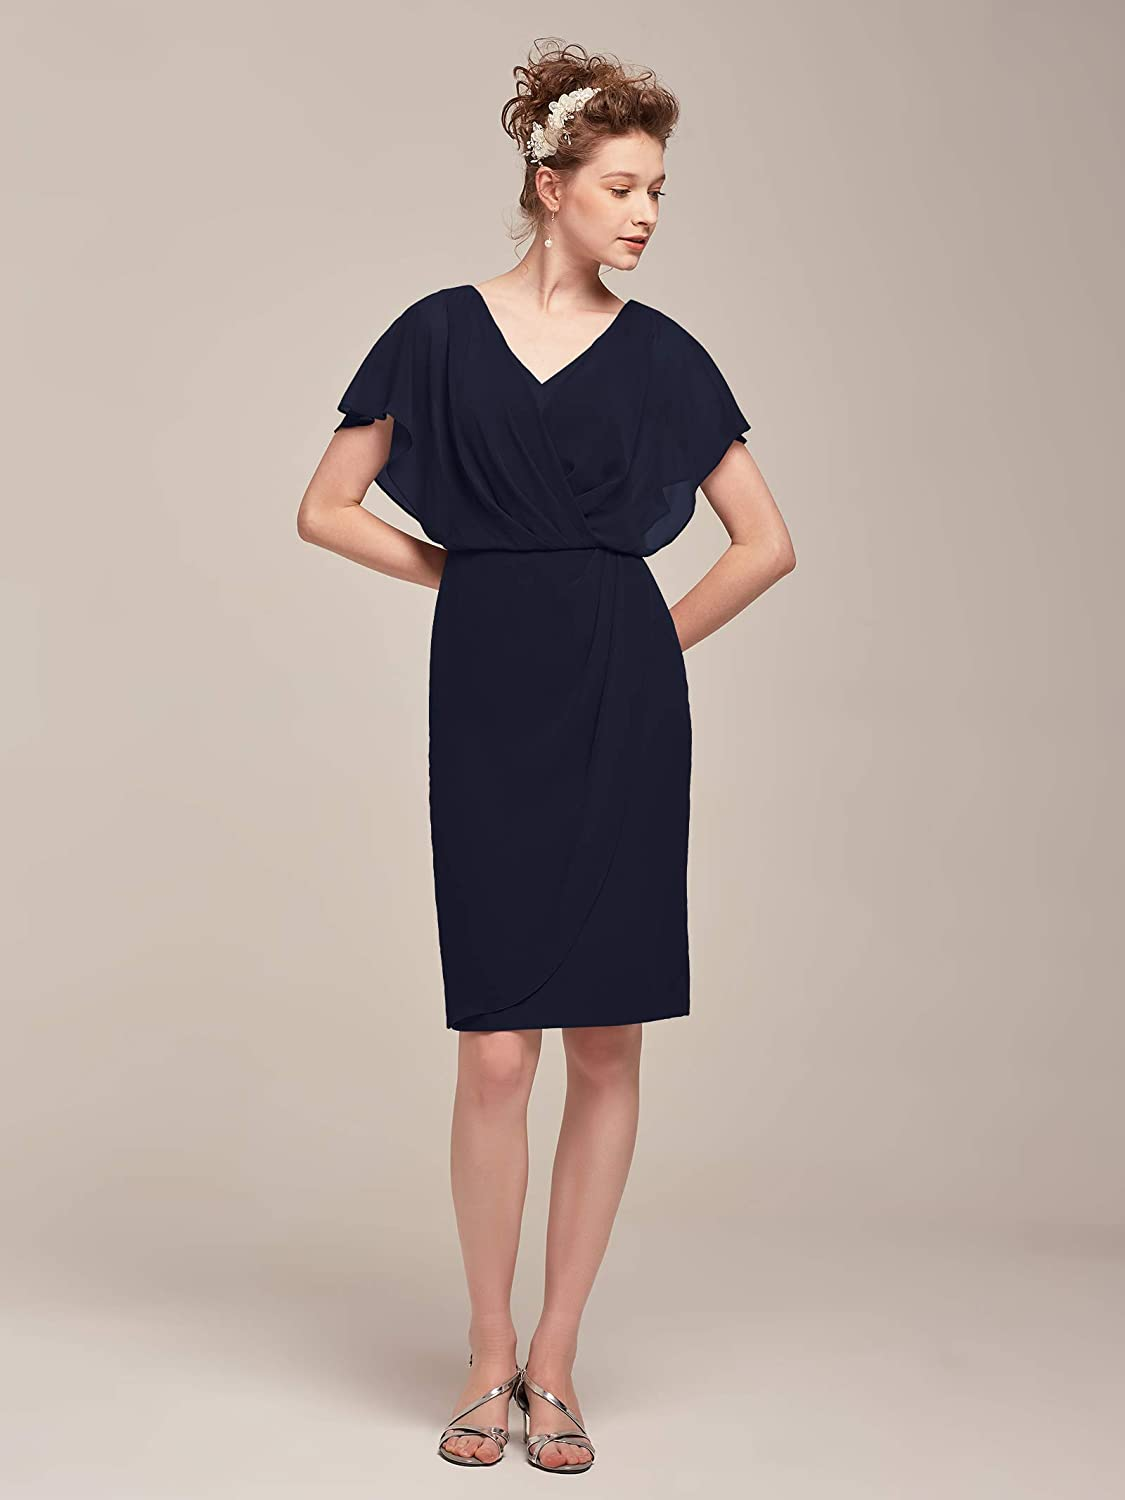 AW Mother of The Bride Dress Plus Size V-Neck Short Sleeve Formal Prom Dress for Wedding Guest Women